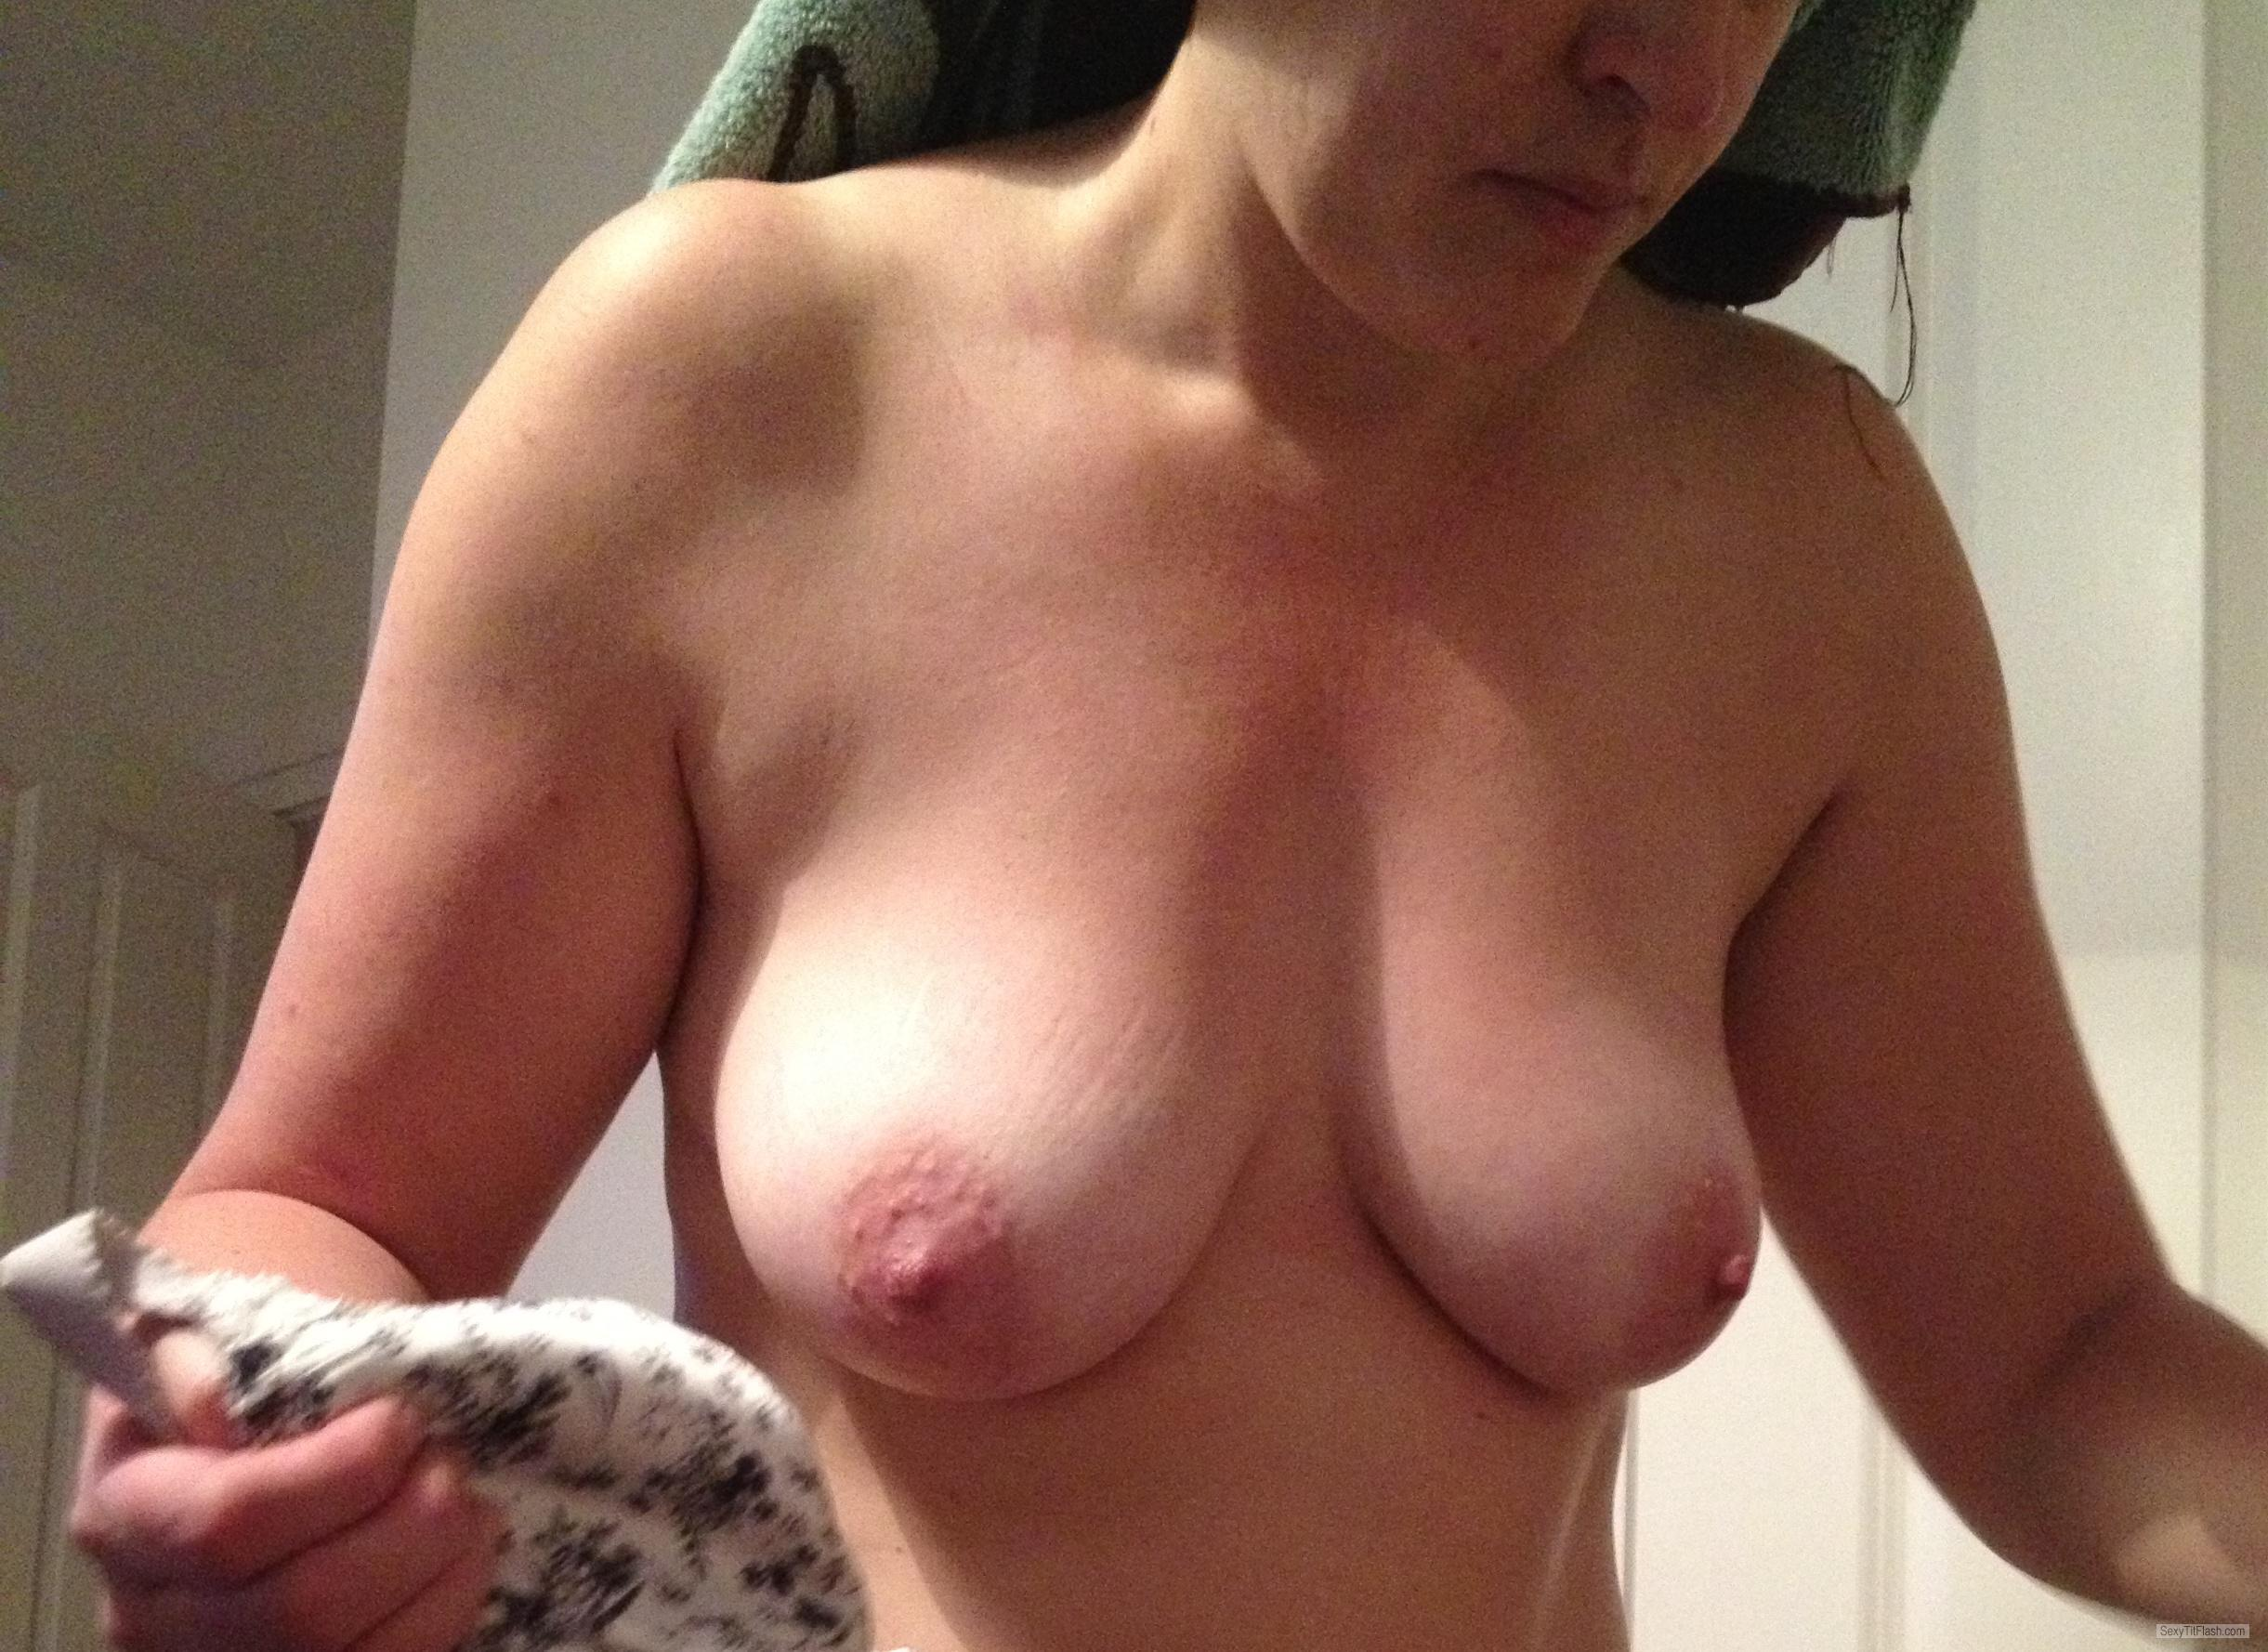 Tit Flash: Wife's Small Tits - Marrow from United Kingdom